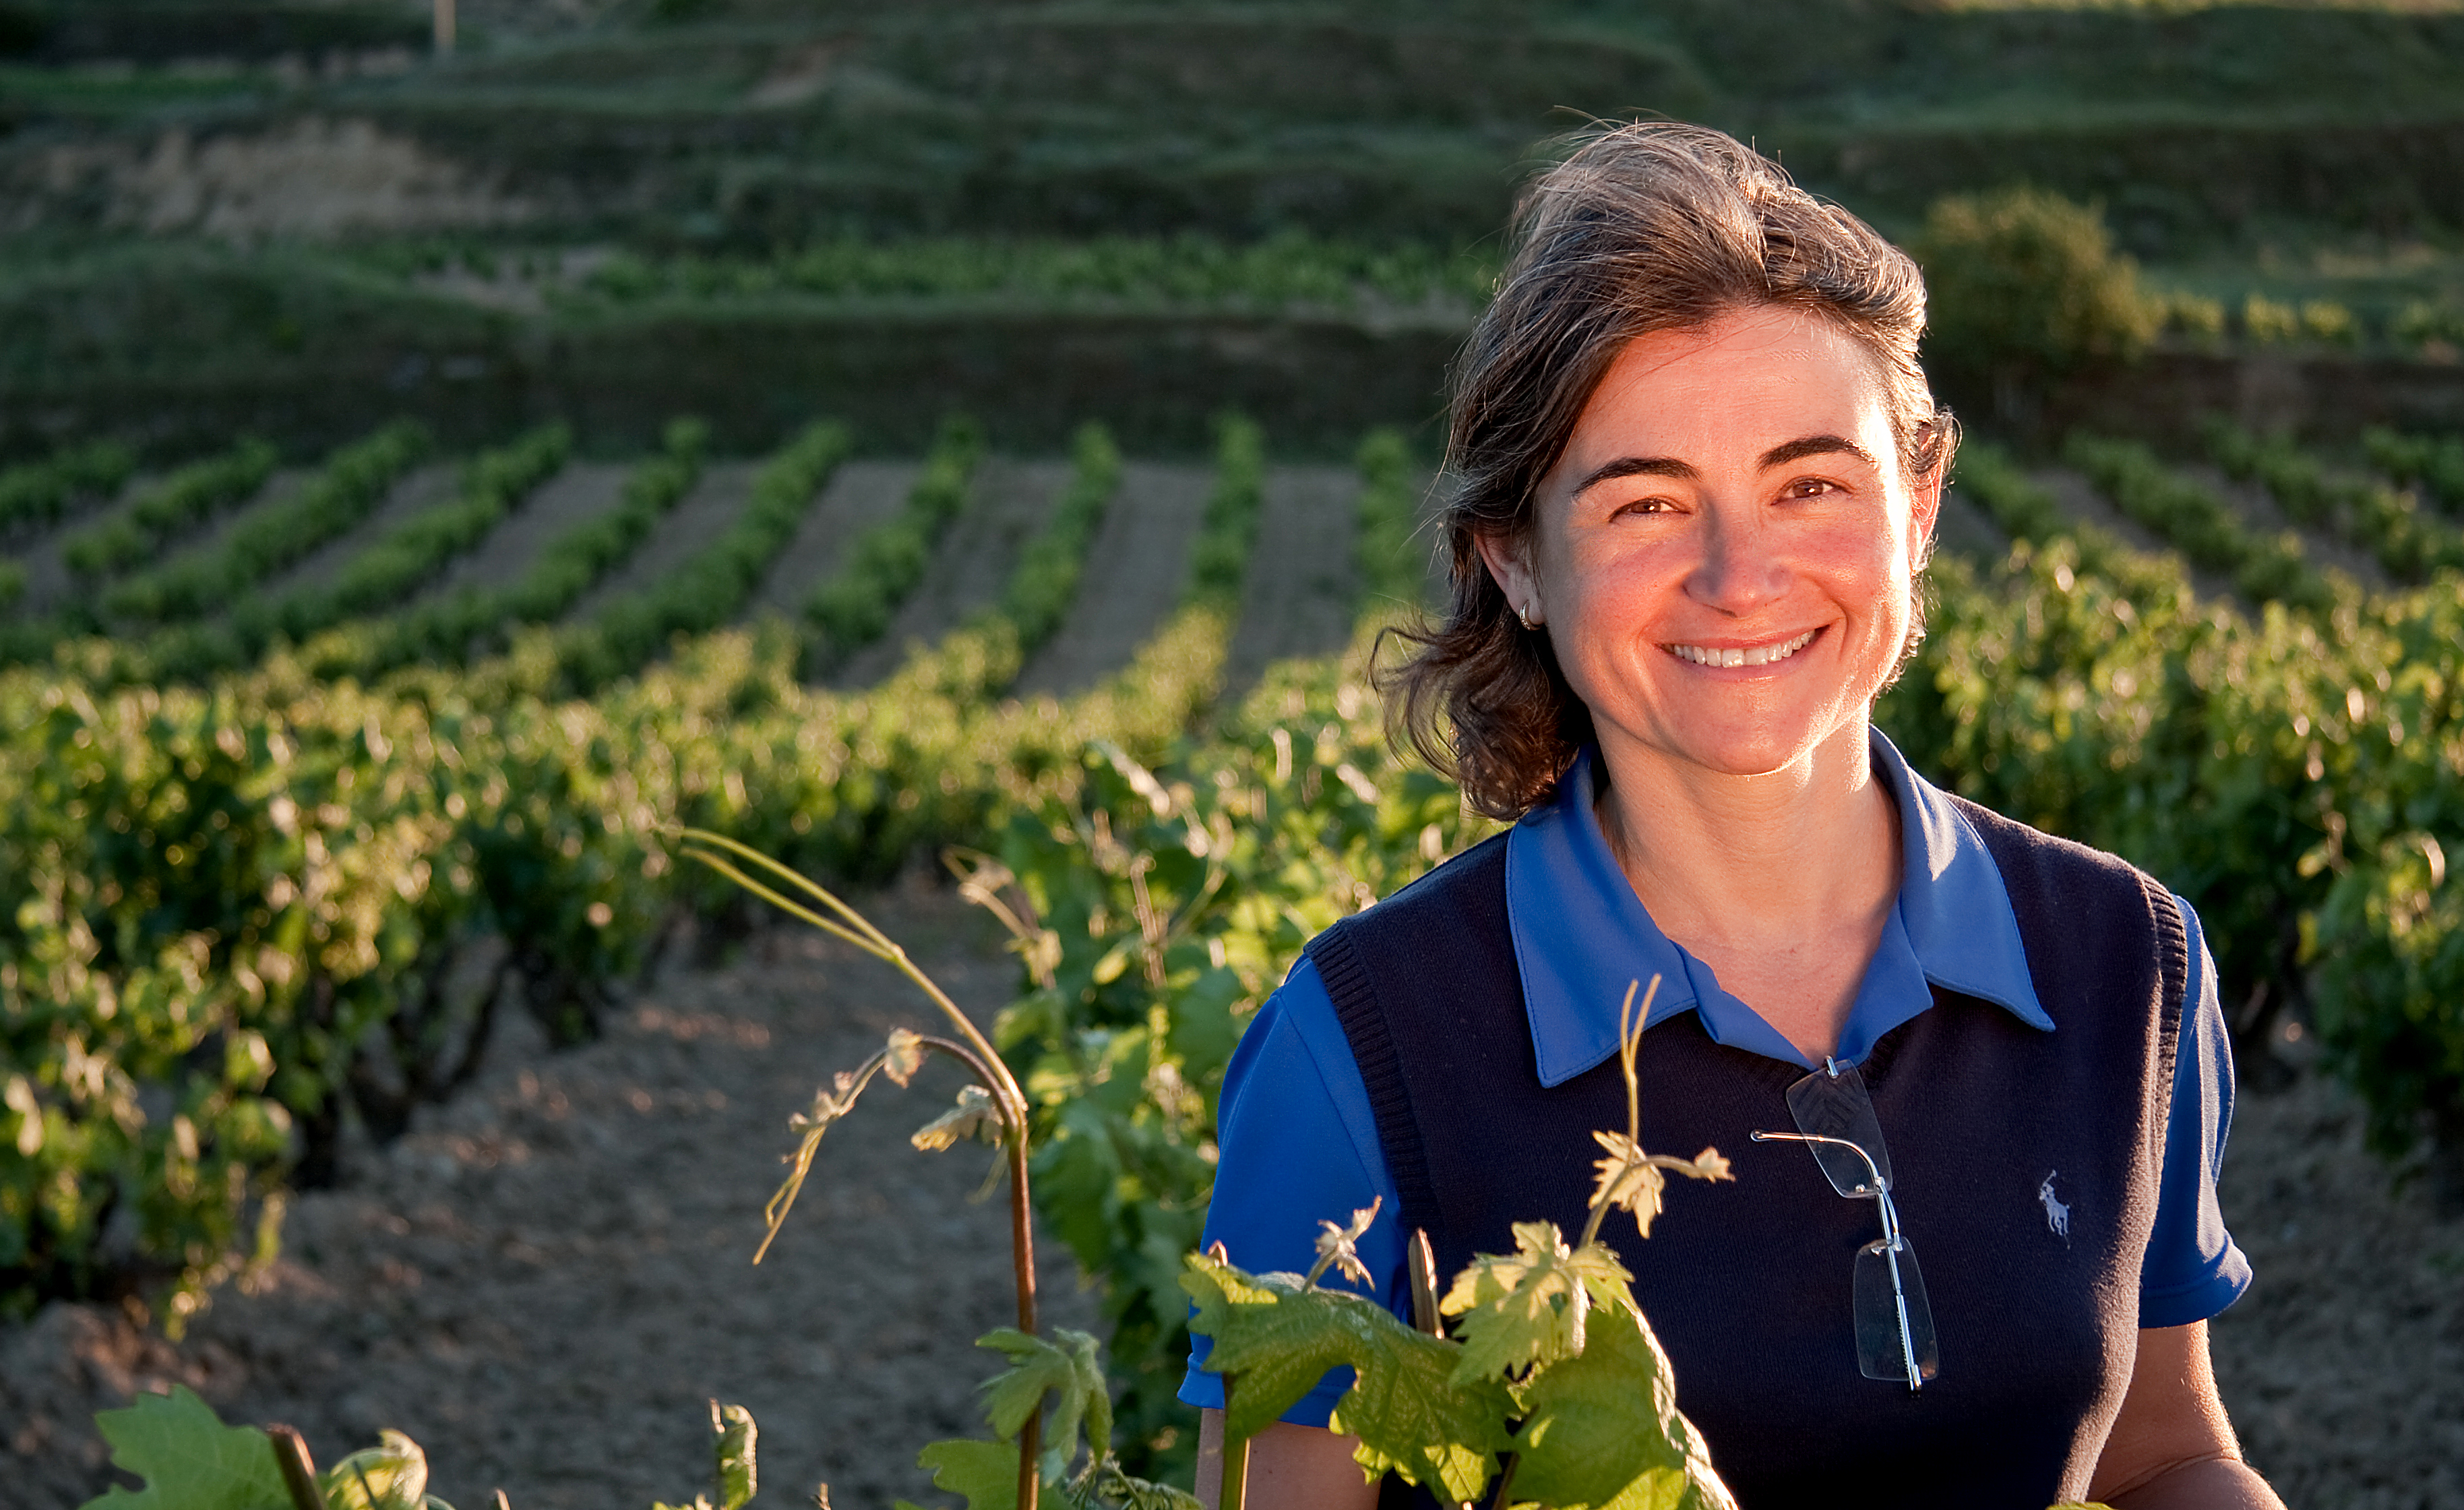 Female Spanish Winemaker